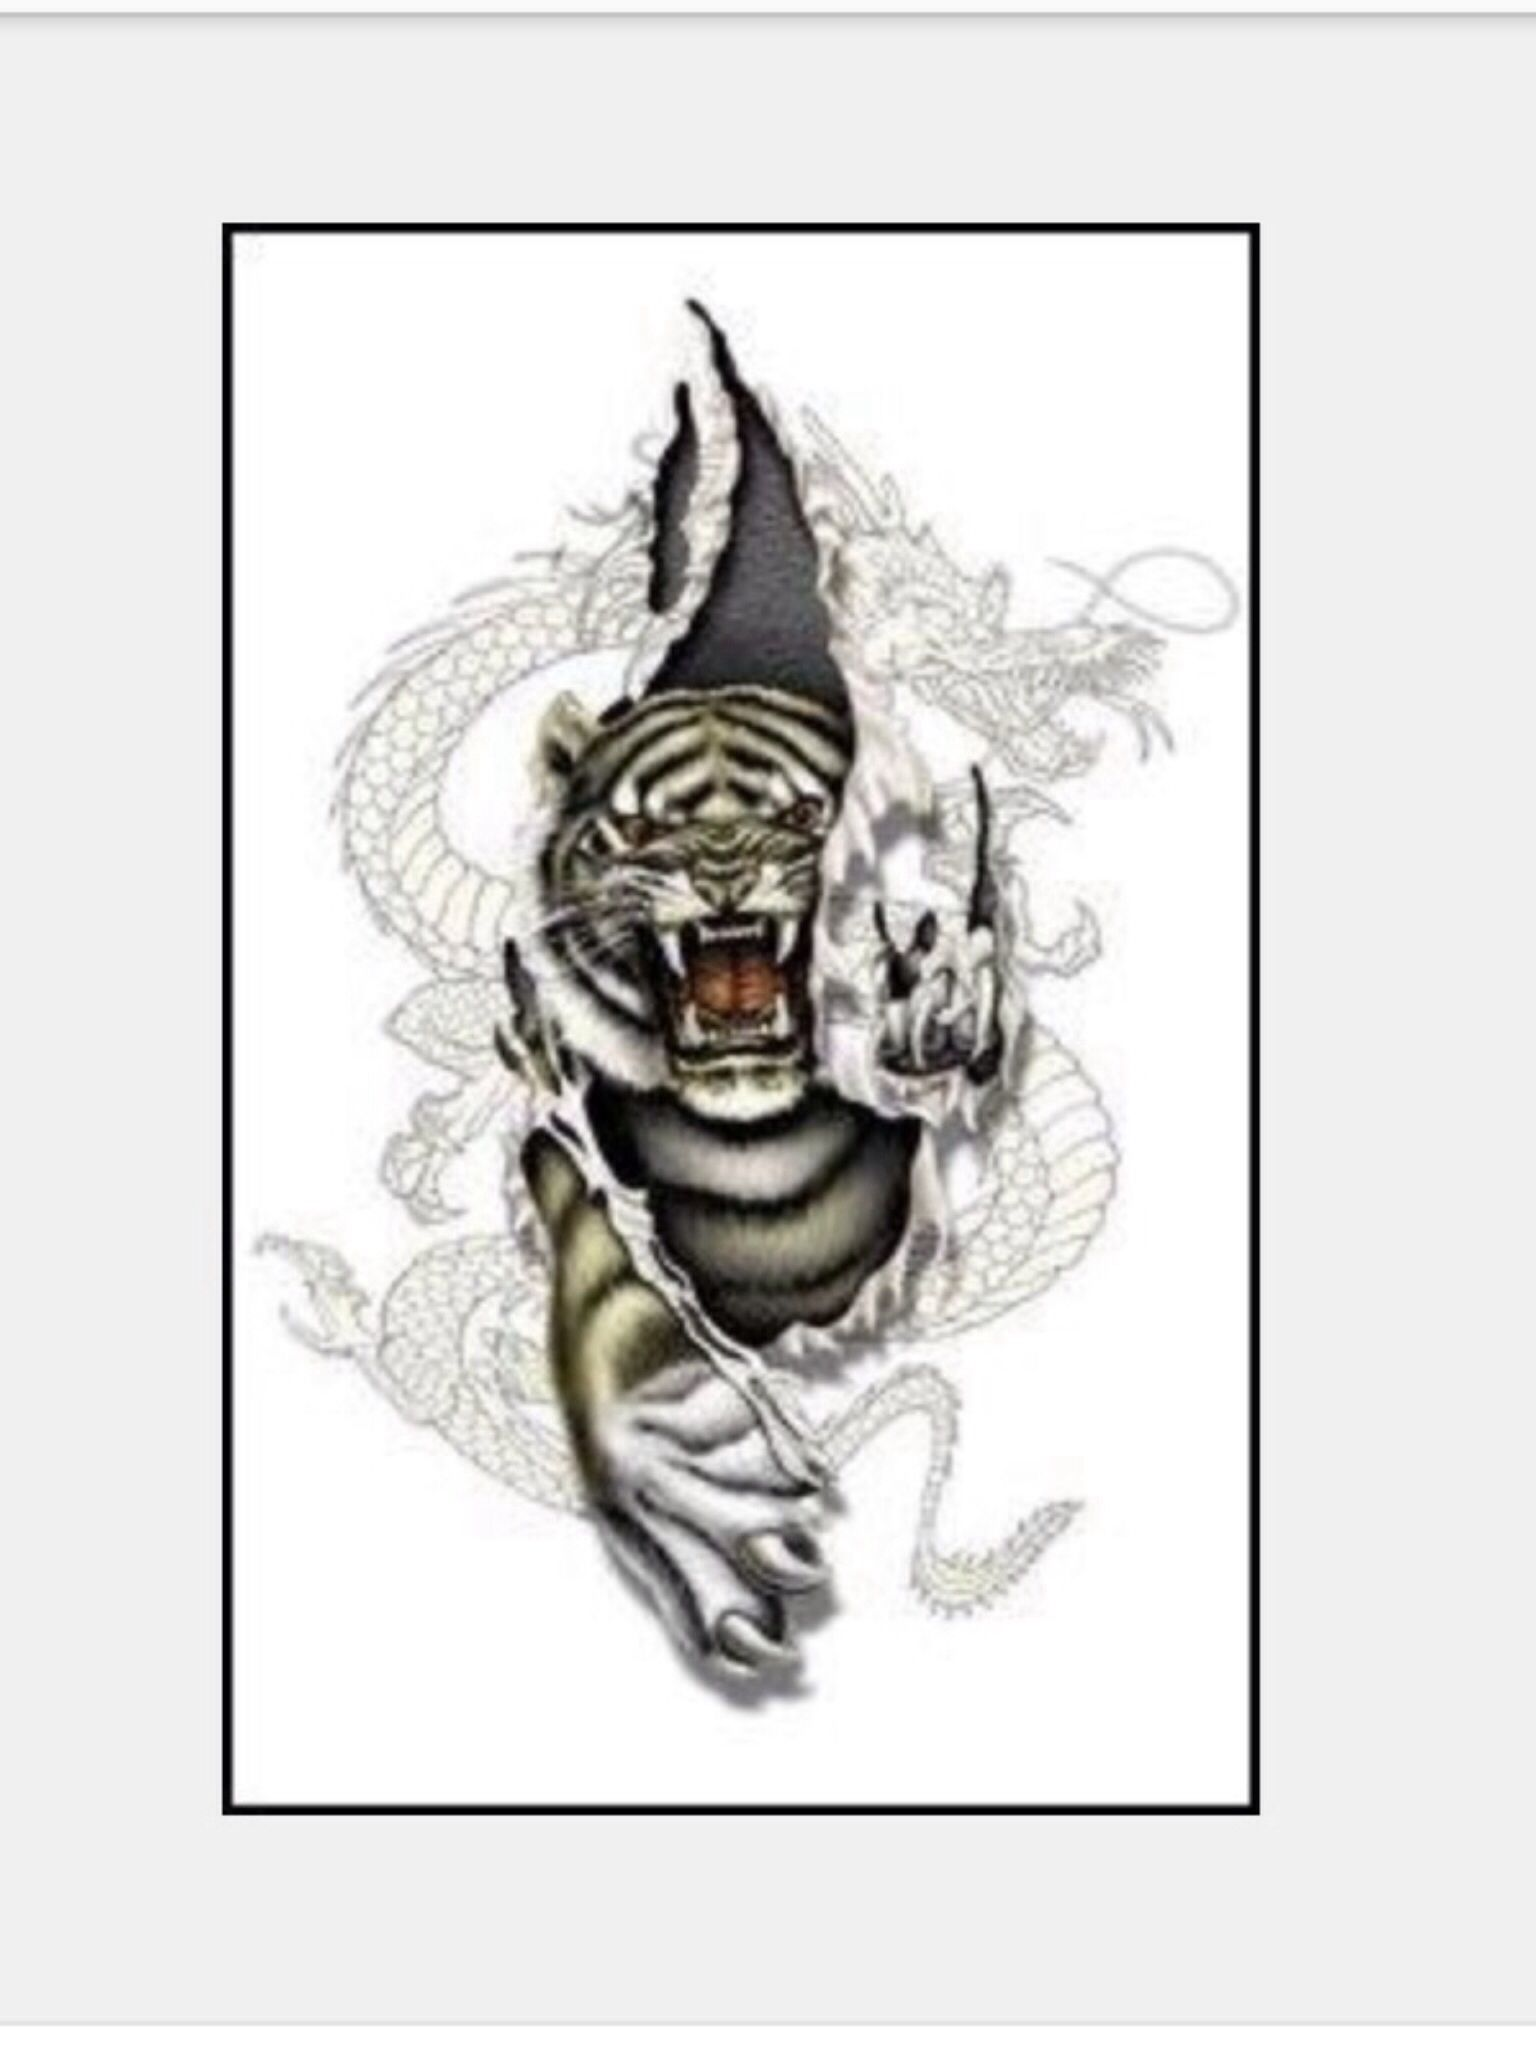 Pin By Bernard Beck On Tꮨttꭷꭷ ꭶ ꭷf Iꮑtꮛrꮛꭶt Cat Tattoo Designs Tiger Tattoo Design Tiger Tattoo